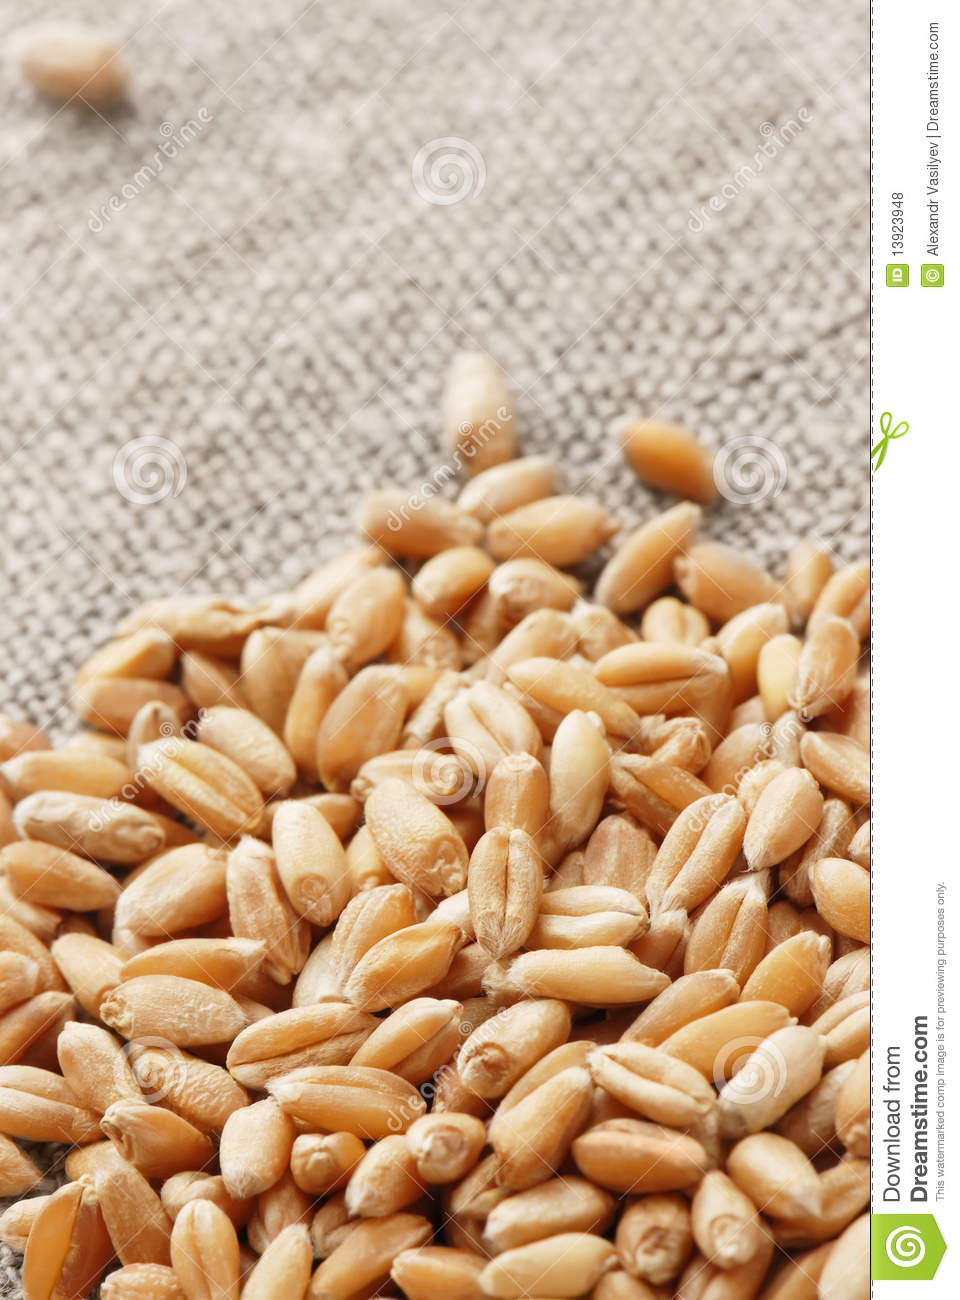 Wheat on a hessian